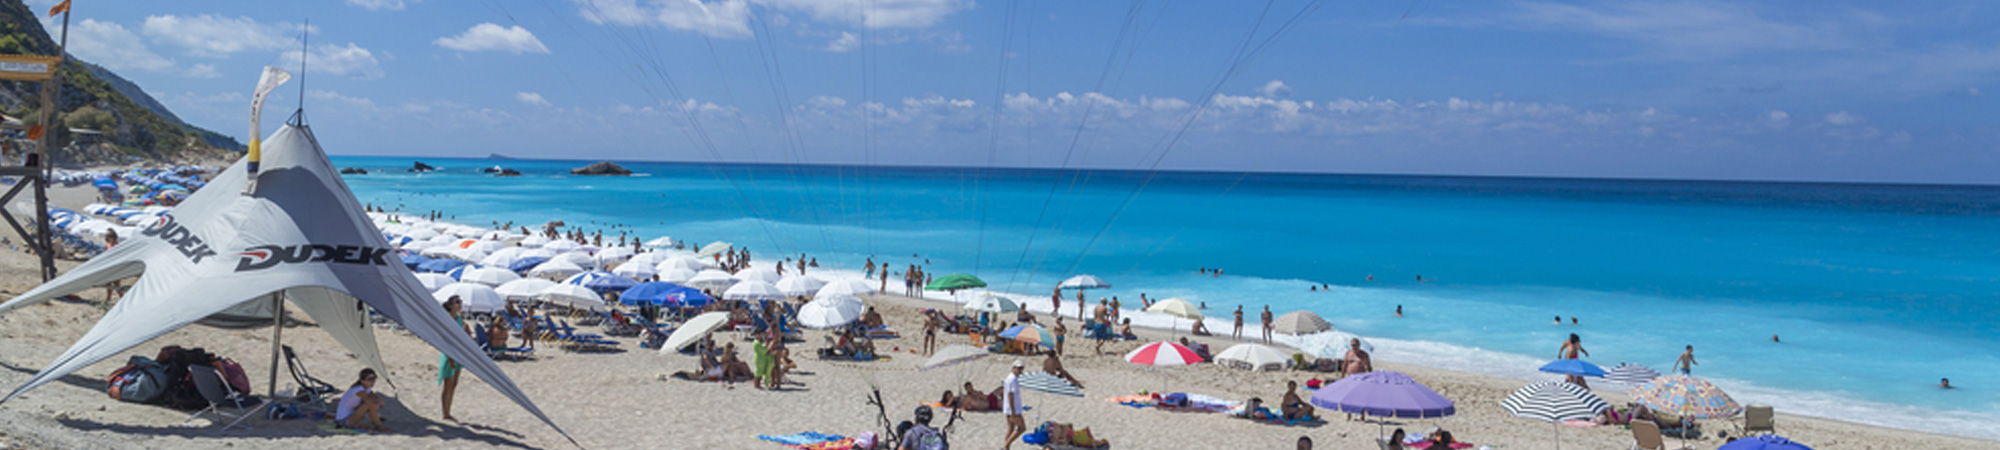 activities ionian horizon villas lefkada greece